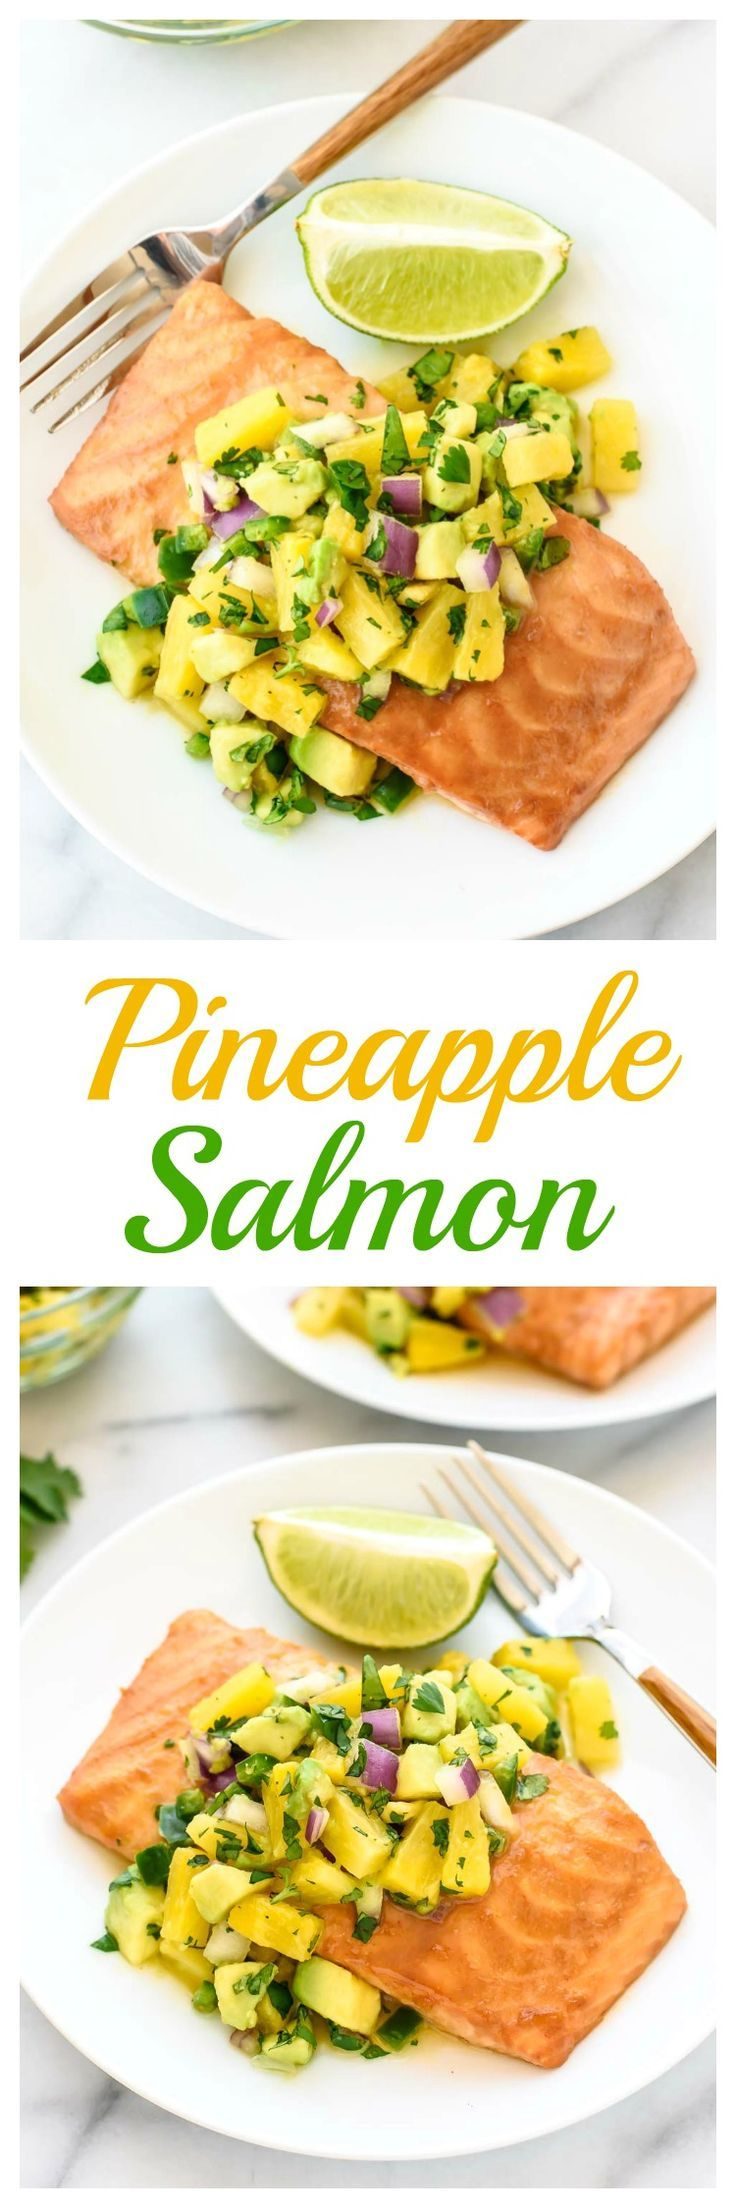 Pineapple Glazed Salmon with Avocado Salsa. Tastes like vacation! Fresh, healthy, and packed with flavor. Canned pineapples make this quick and easy, even for busy weeknights. Recipe at www.wellplated.com @wellplated